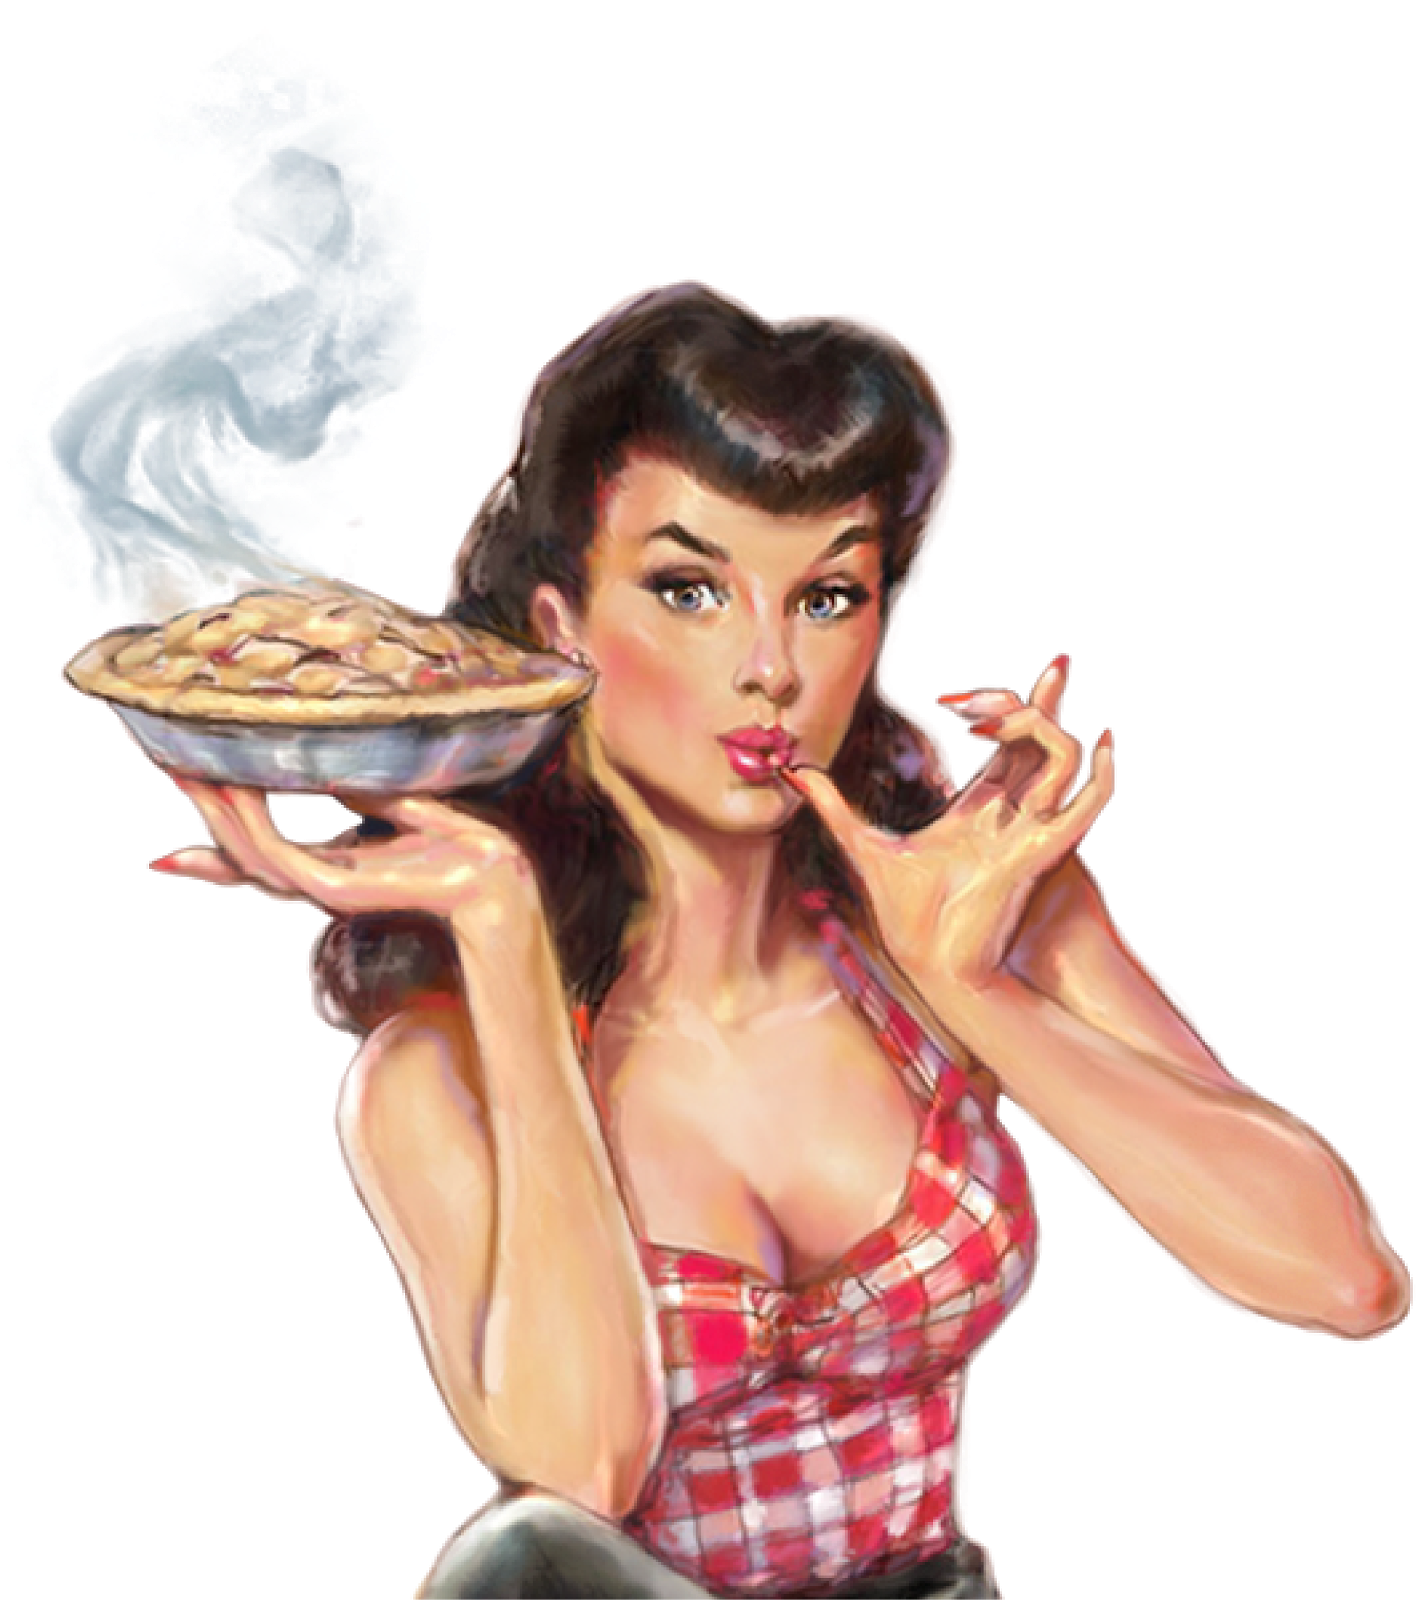 Pin up girl png. Whiskey cherry pie apple